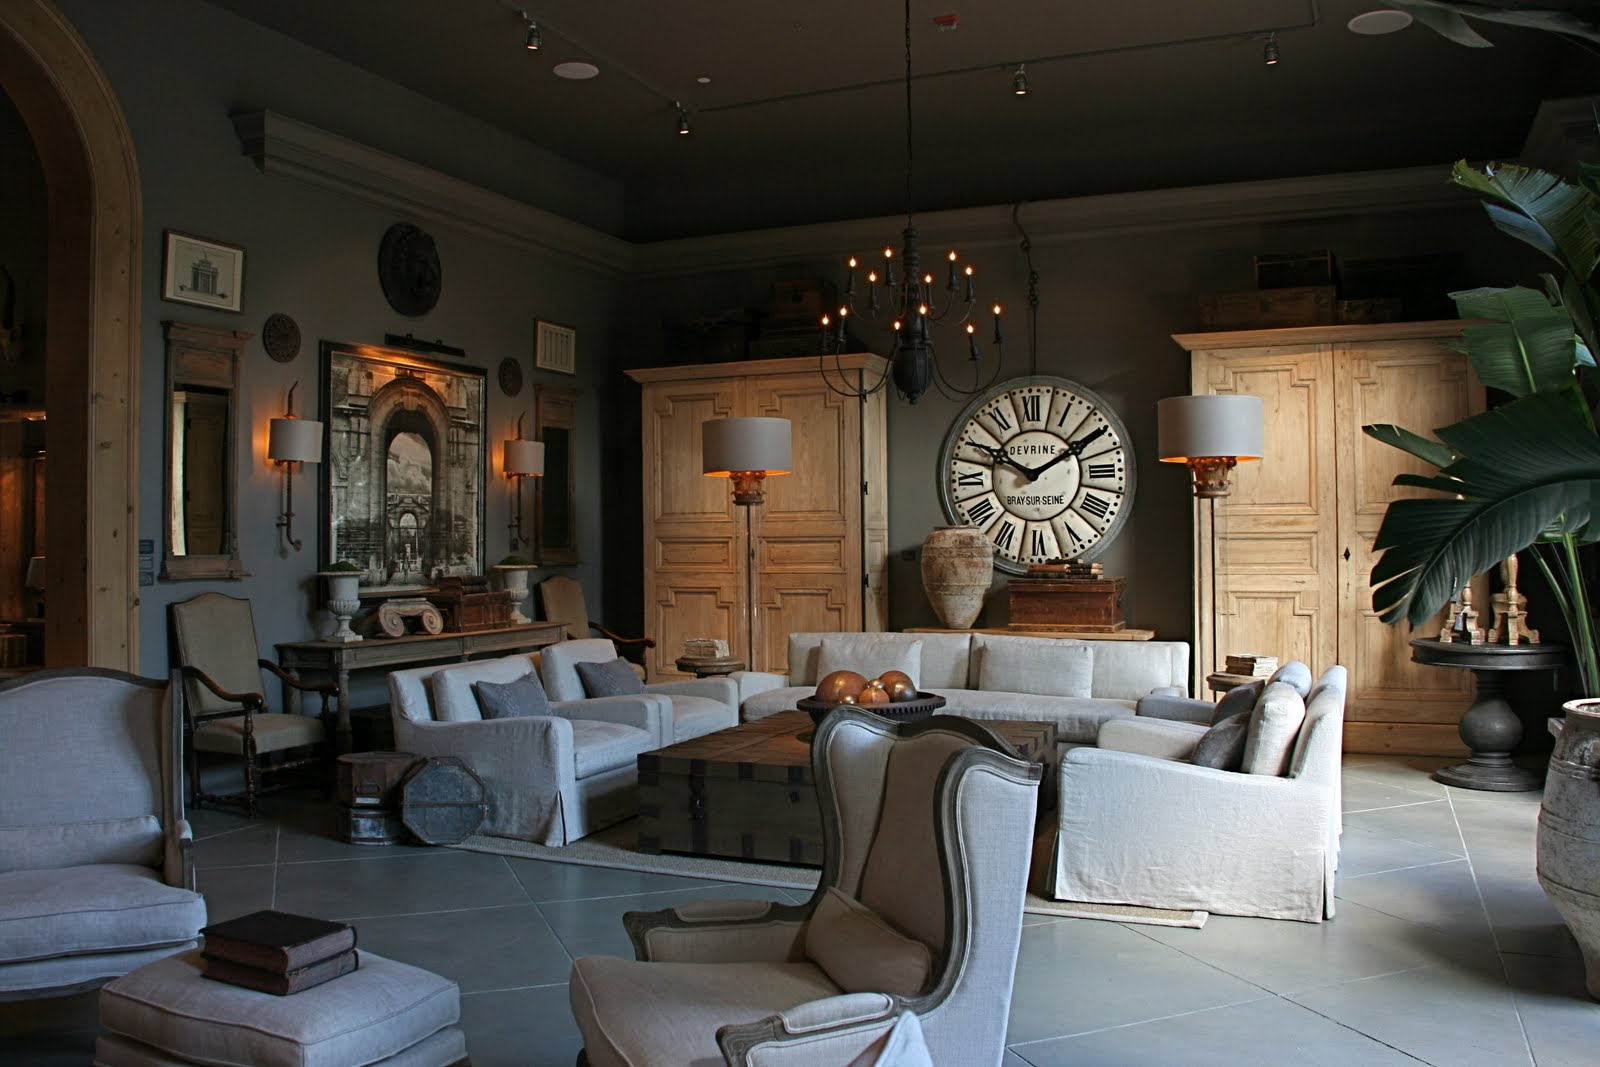 vignette design The San Francisco Restoration Hardware Gallery